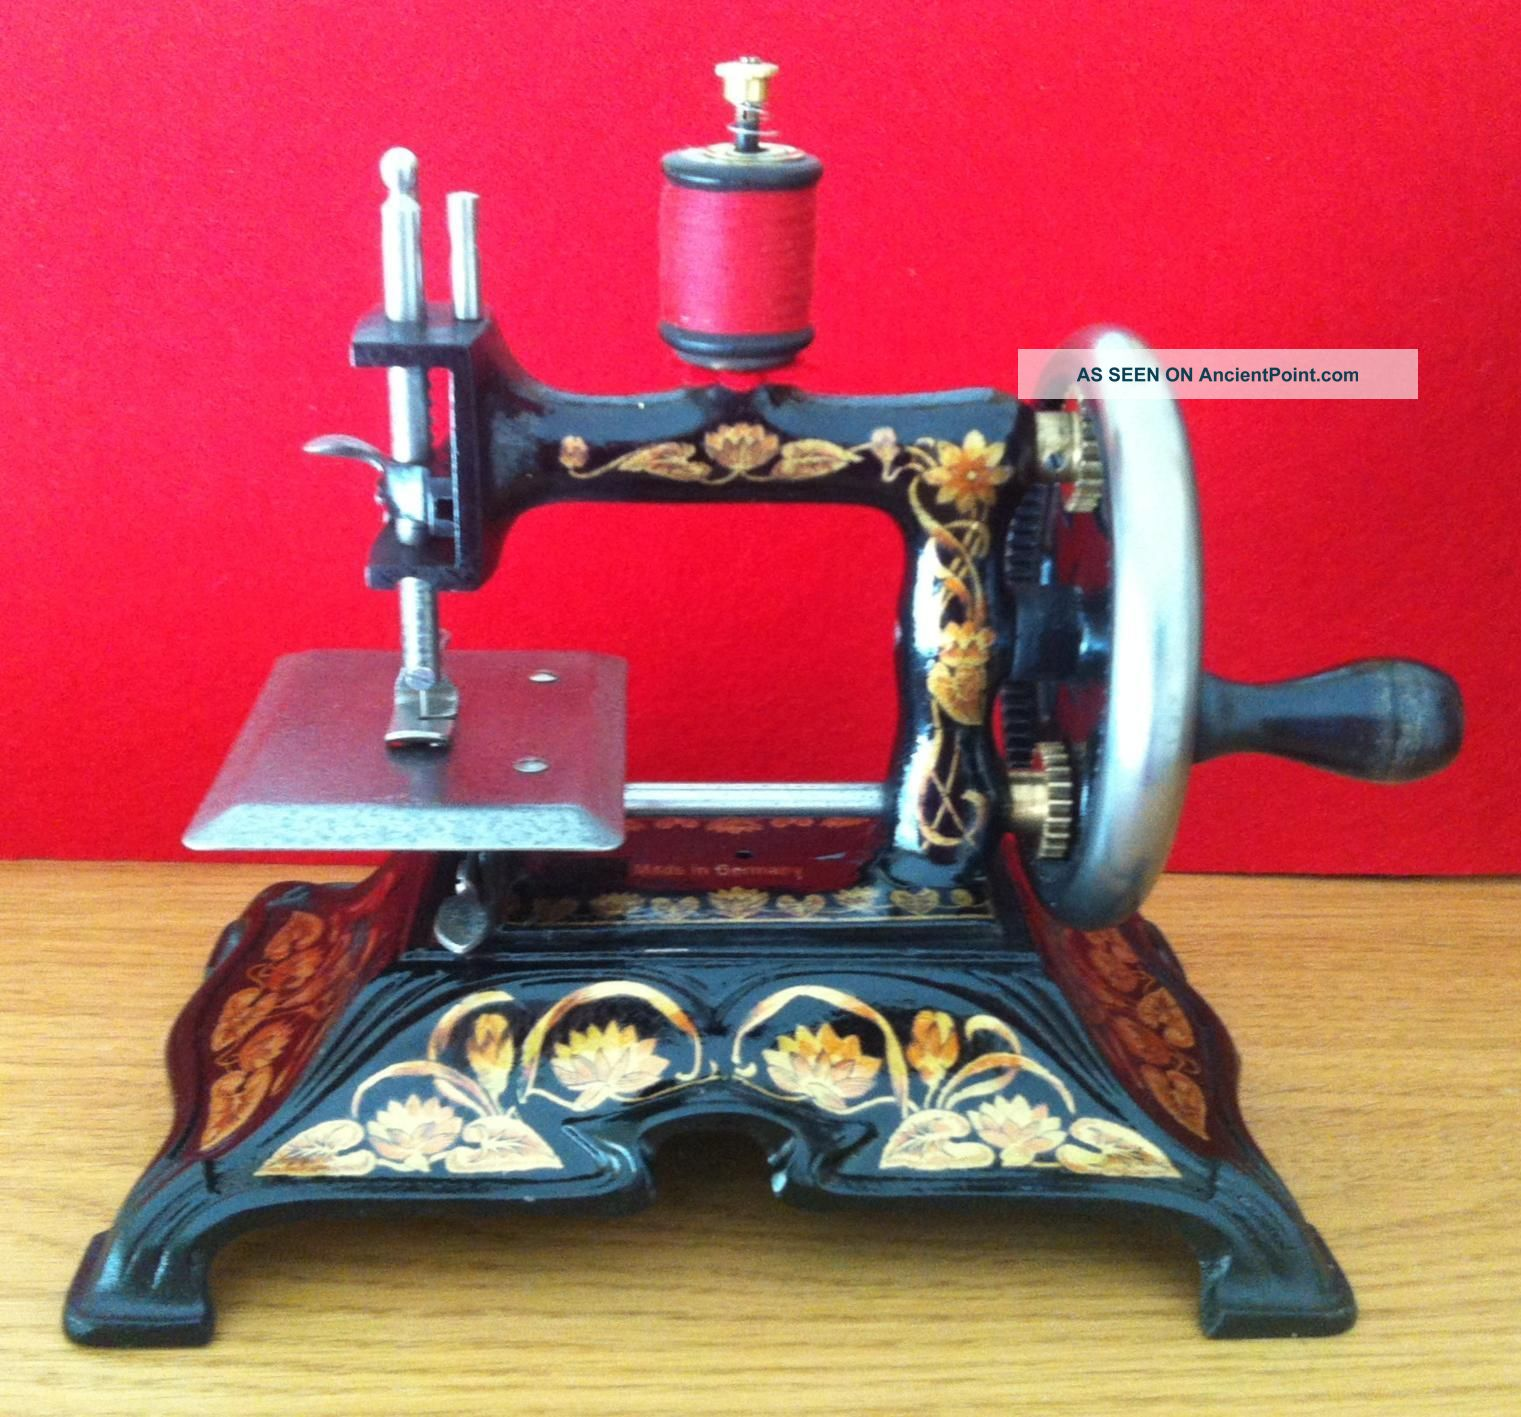 Antique Cast Iron Toy Sewing Machine - F.  Muller - Model 15 Sewing Machines photo